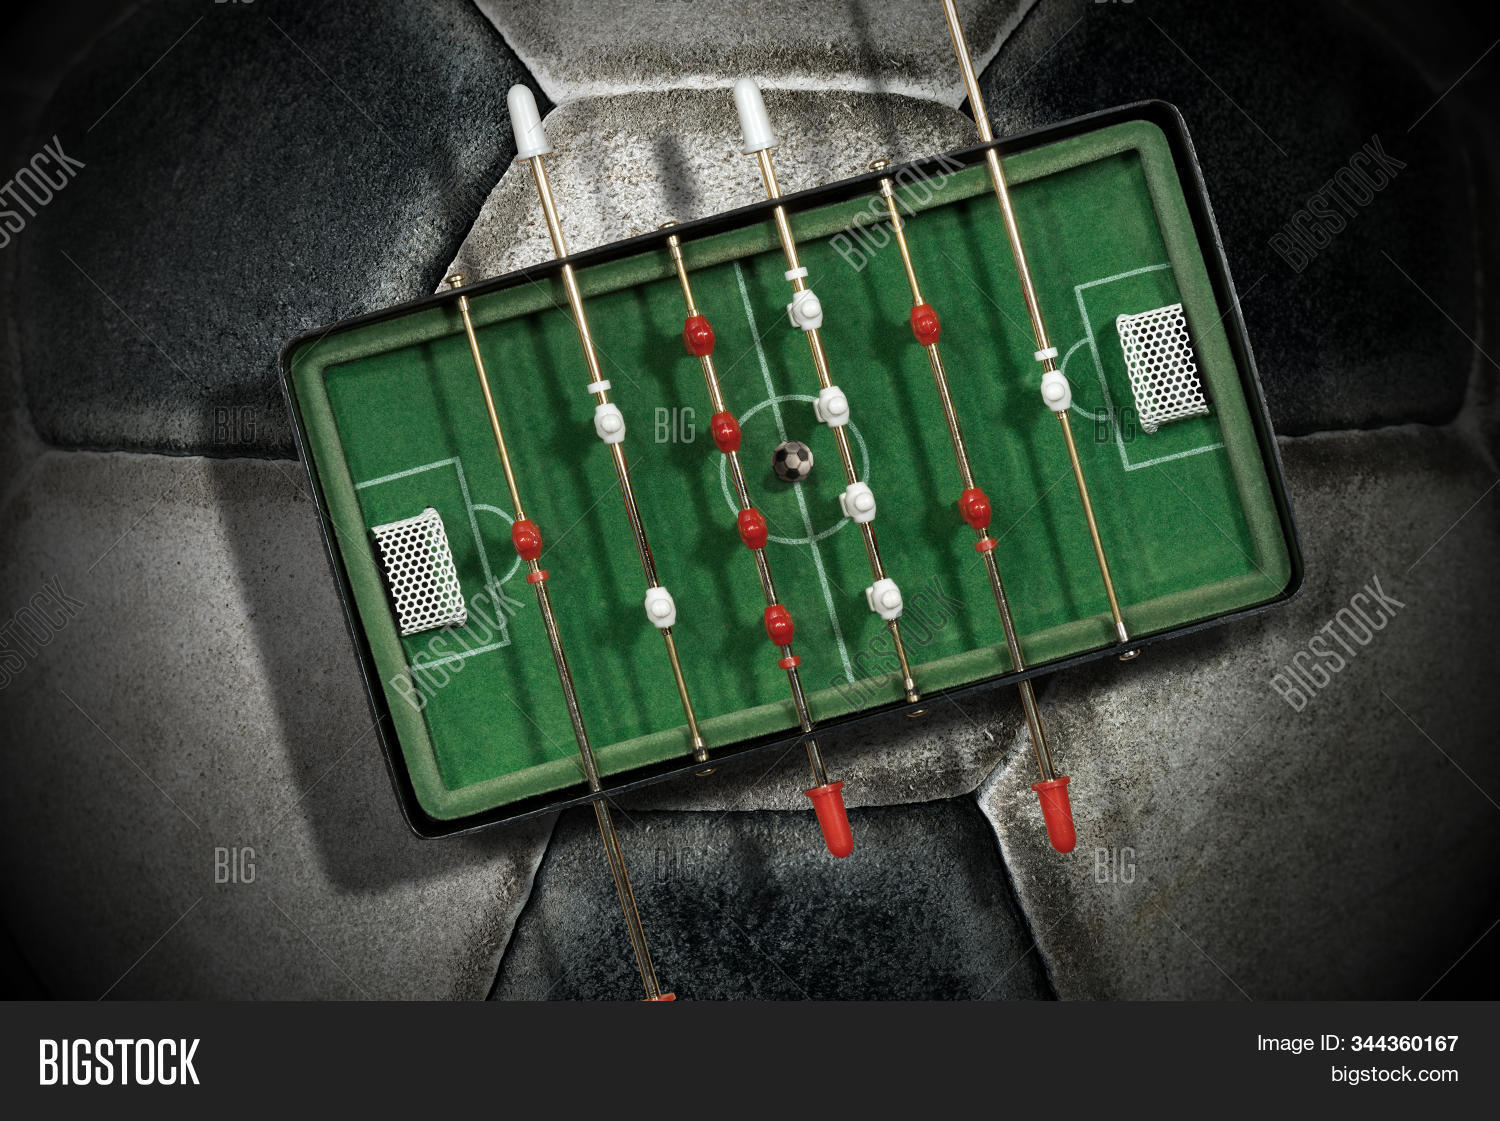 Foosball Top View Image Photo Free Trial Bigstock